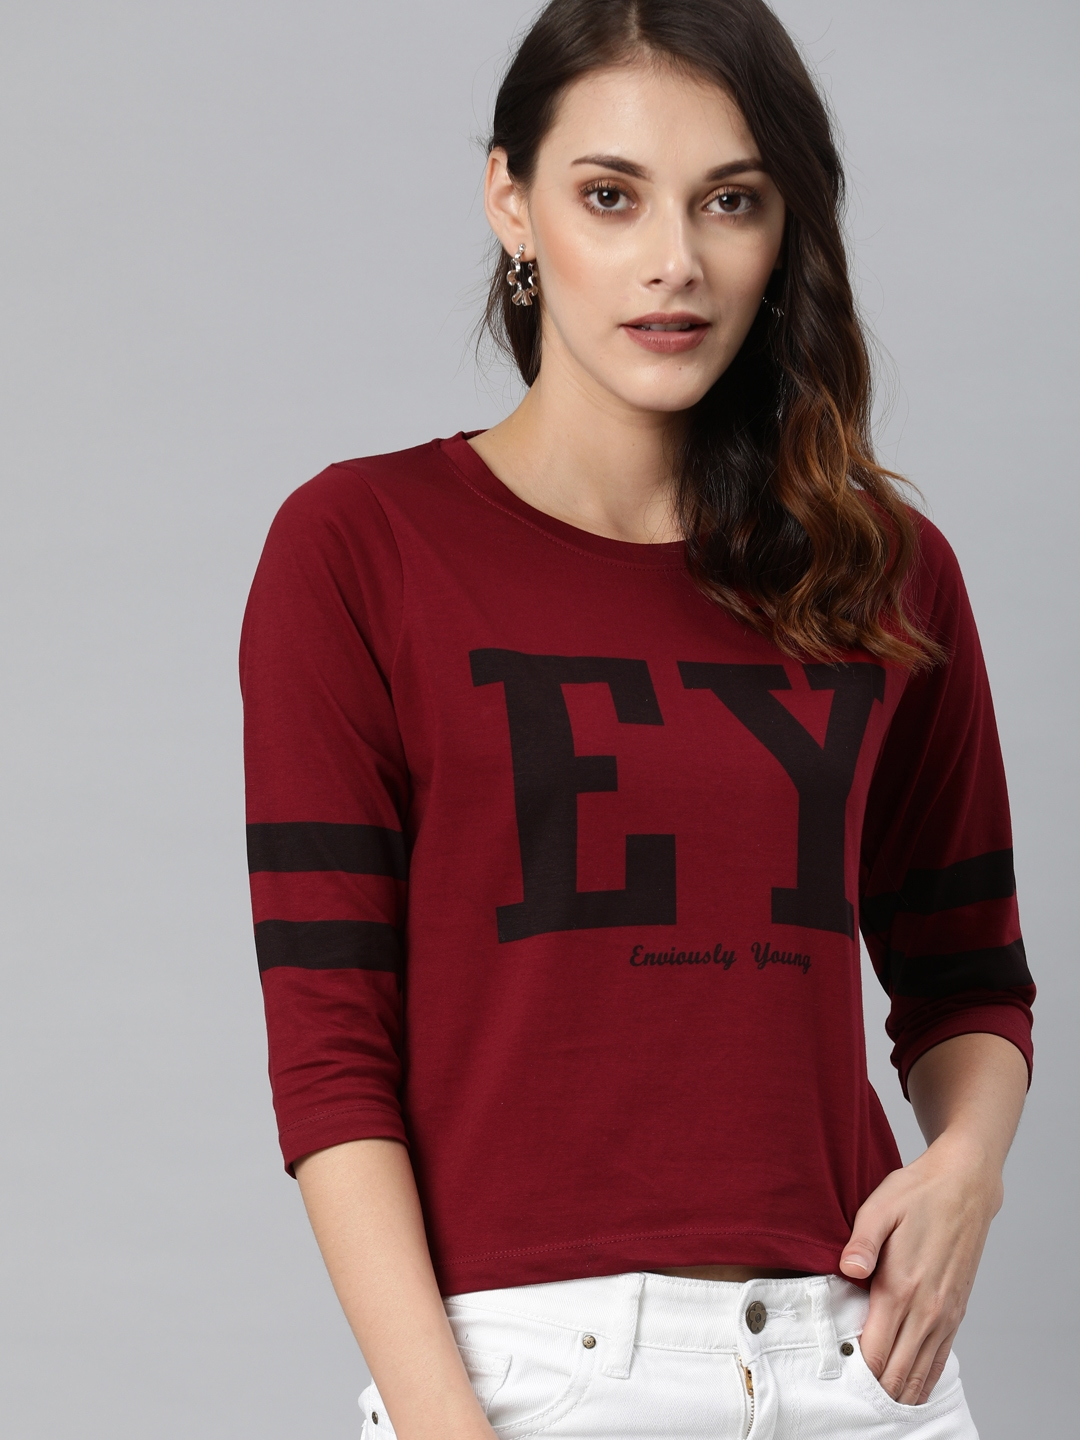 Enviously Young Women Maroon Printed Round Neck T shirt